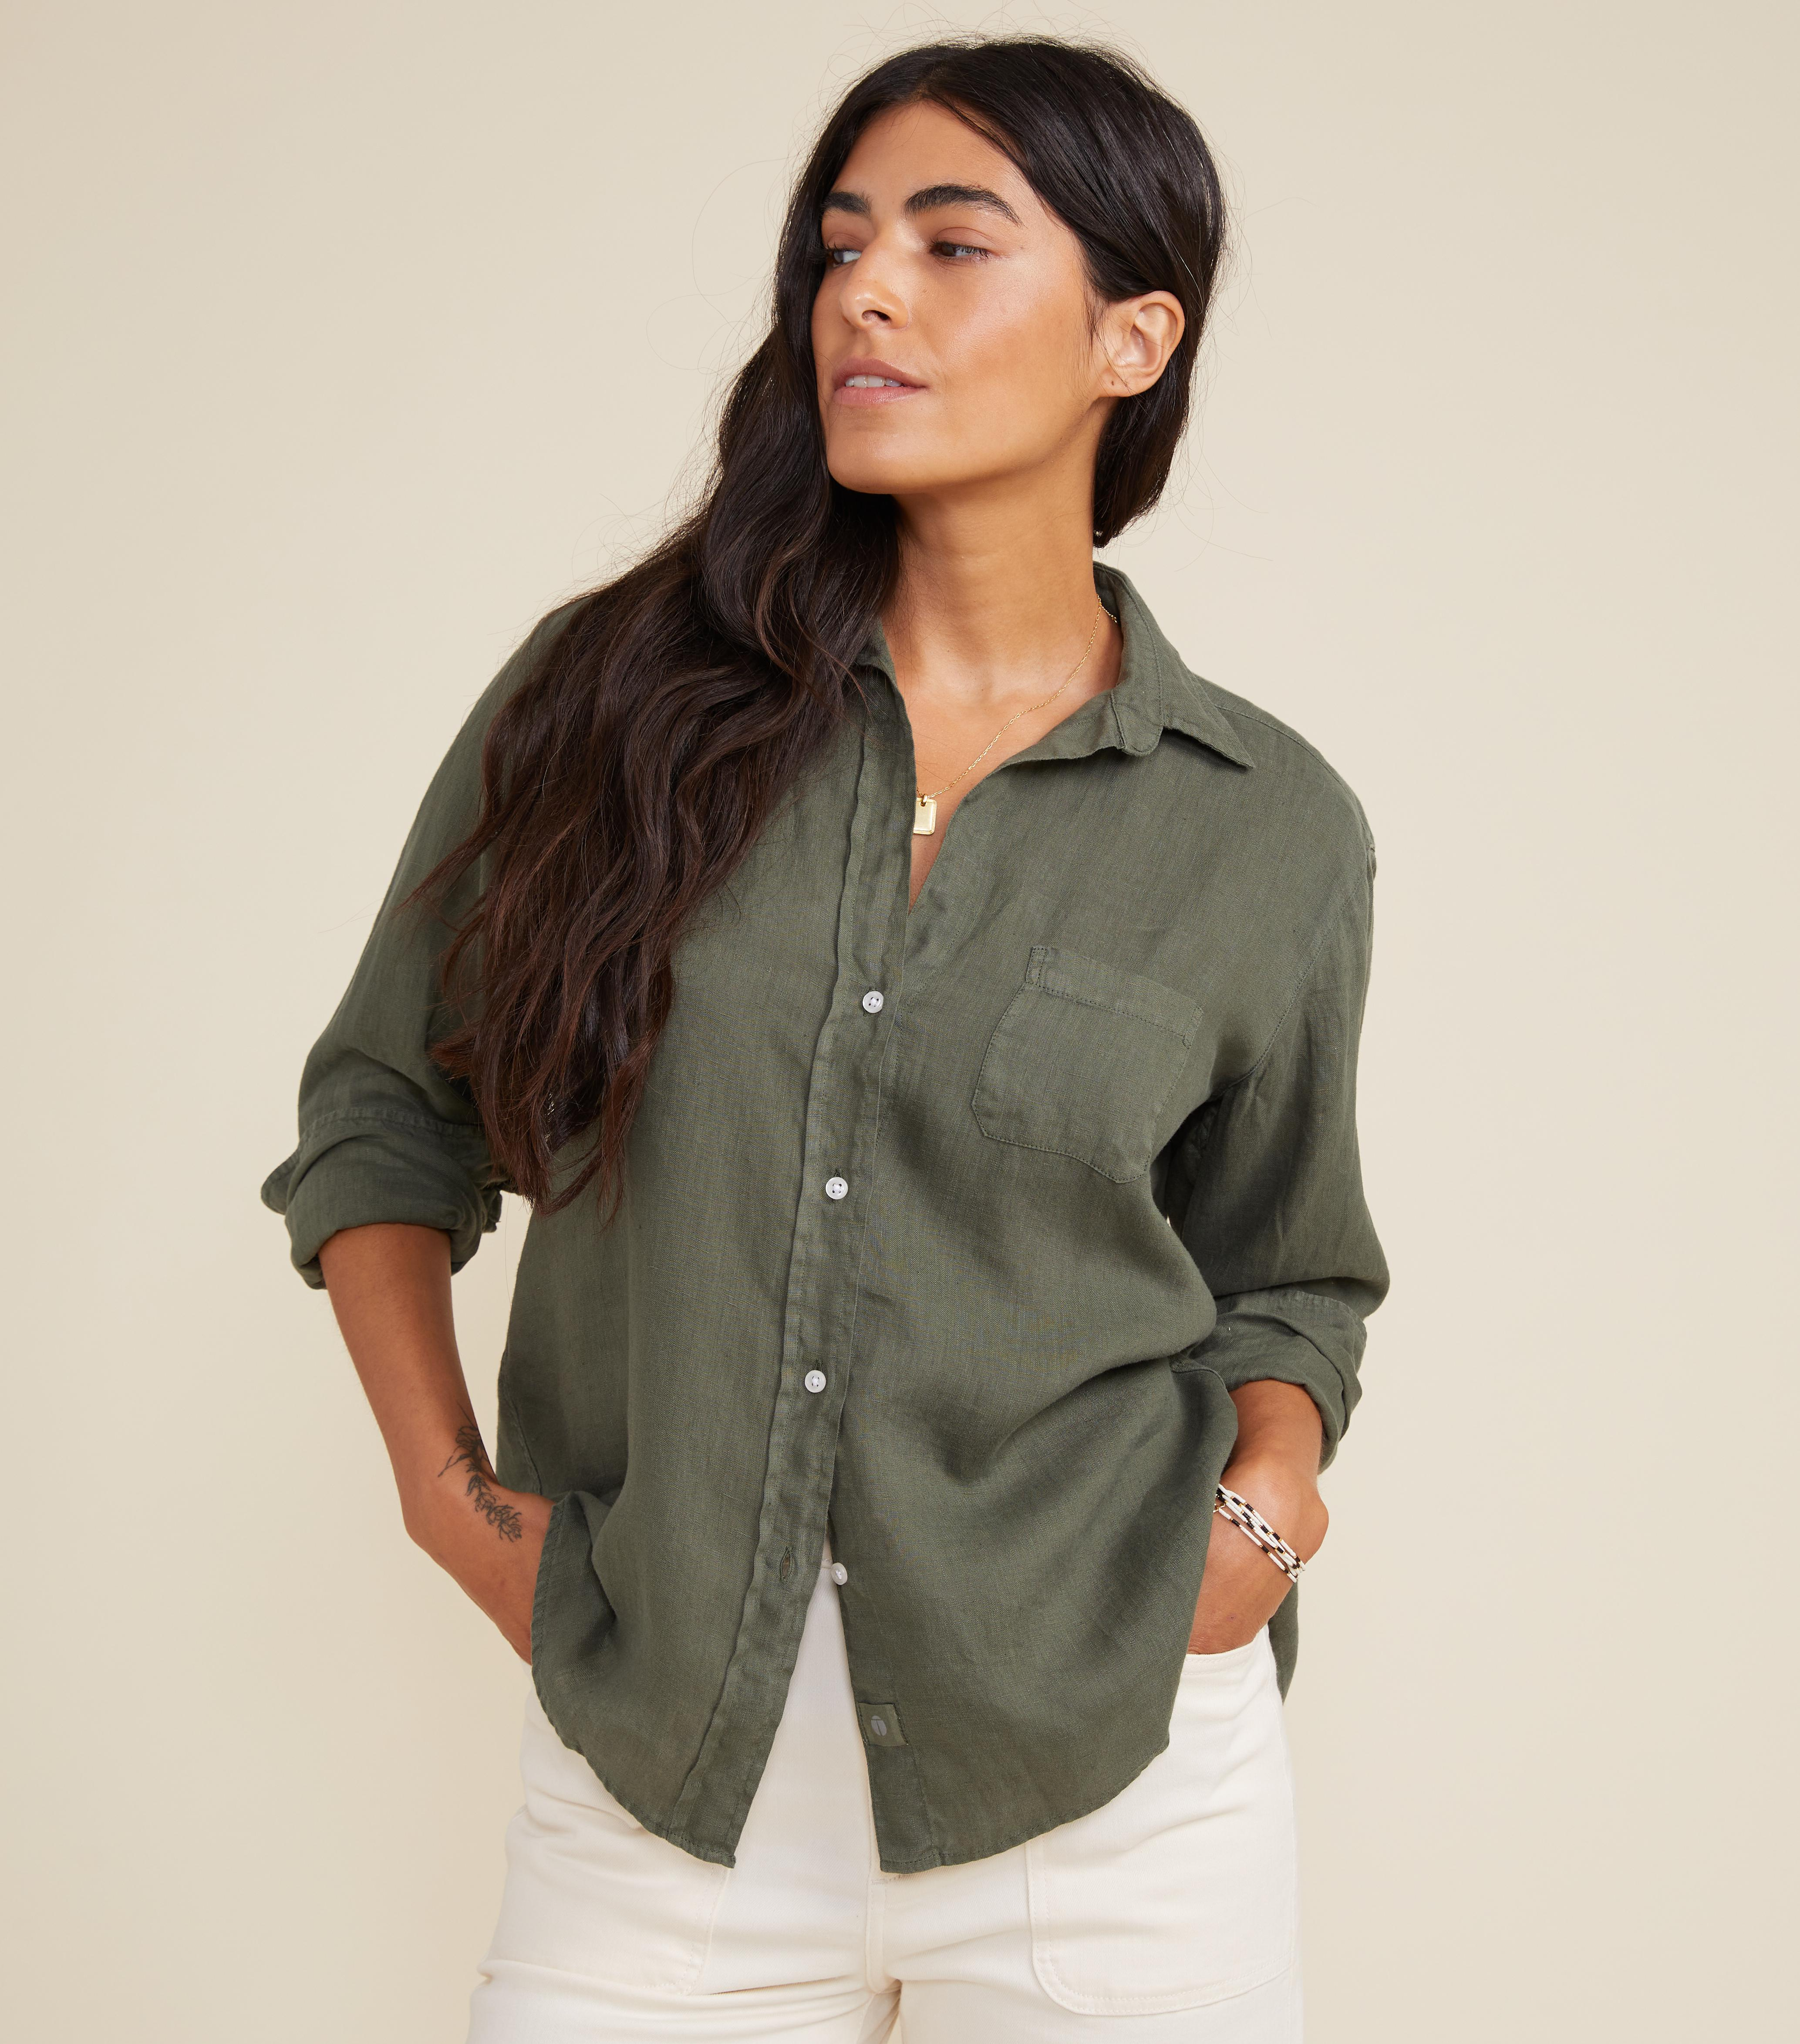 The Hero Button-Up Shirt Army Green, Tumbled Linen